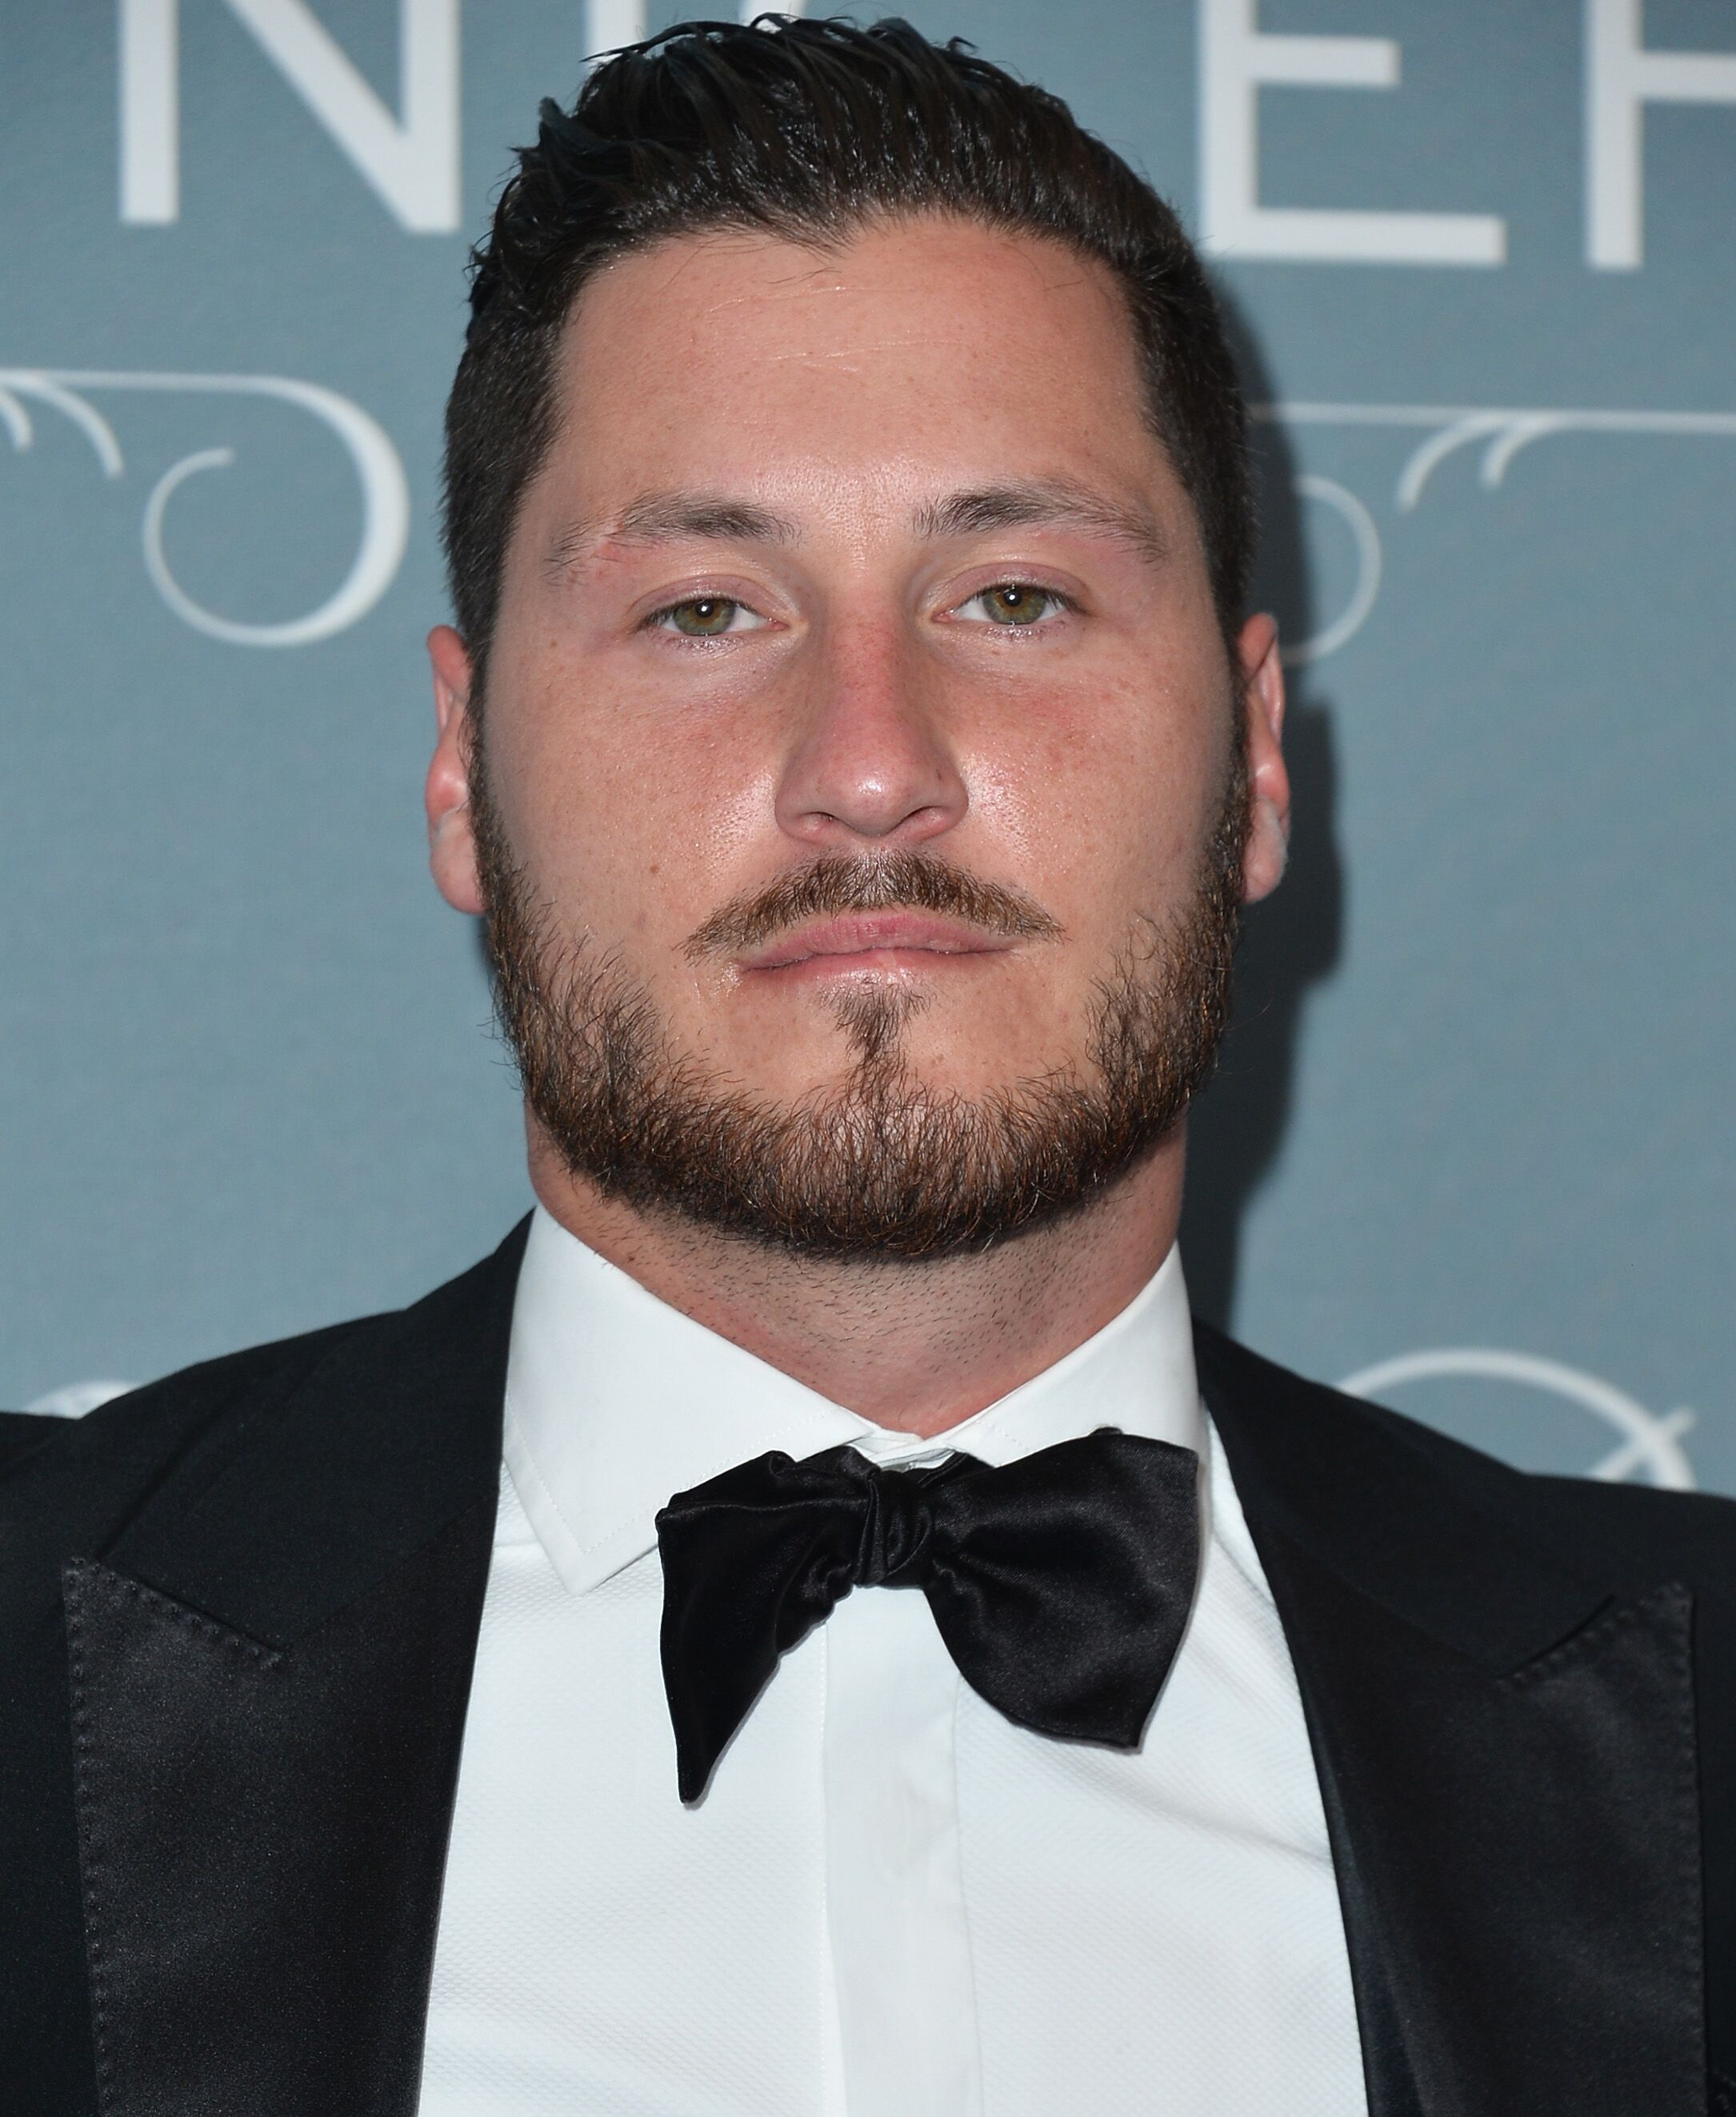 Val Chmerkovskiy arrives to the 2014 UNICEF Ball Presented by Baccarat at the Regent Beverly Wilshire Hotel  | Getty Images